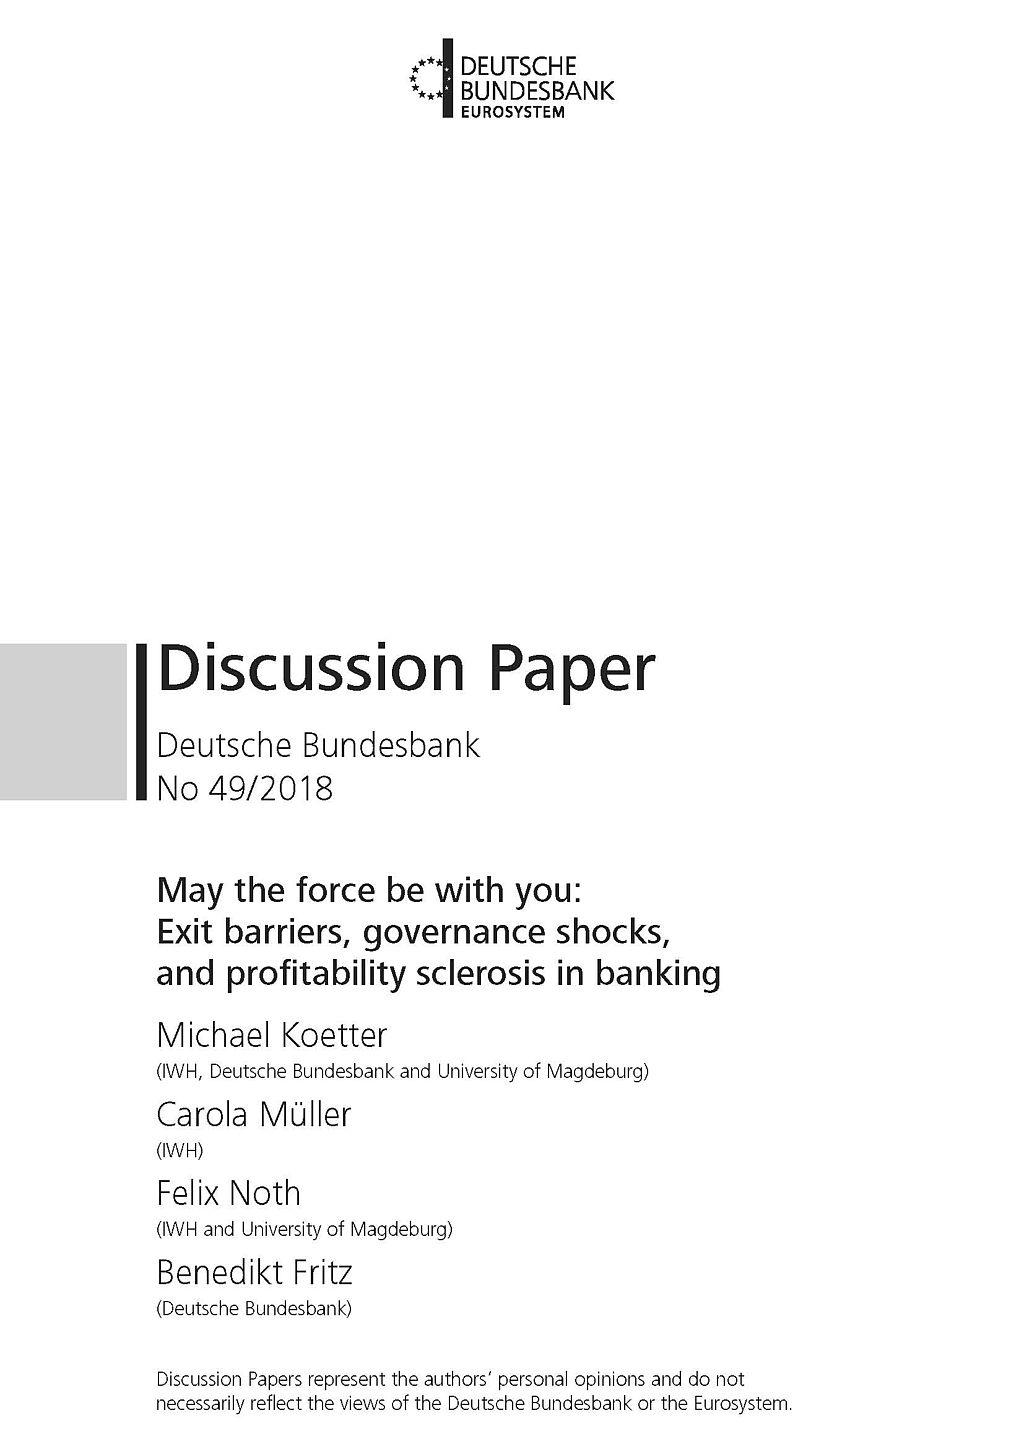 cover_Deutsche-Bundesbank-Discussion-Paper_2018-49.jpg